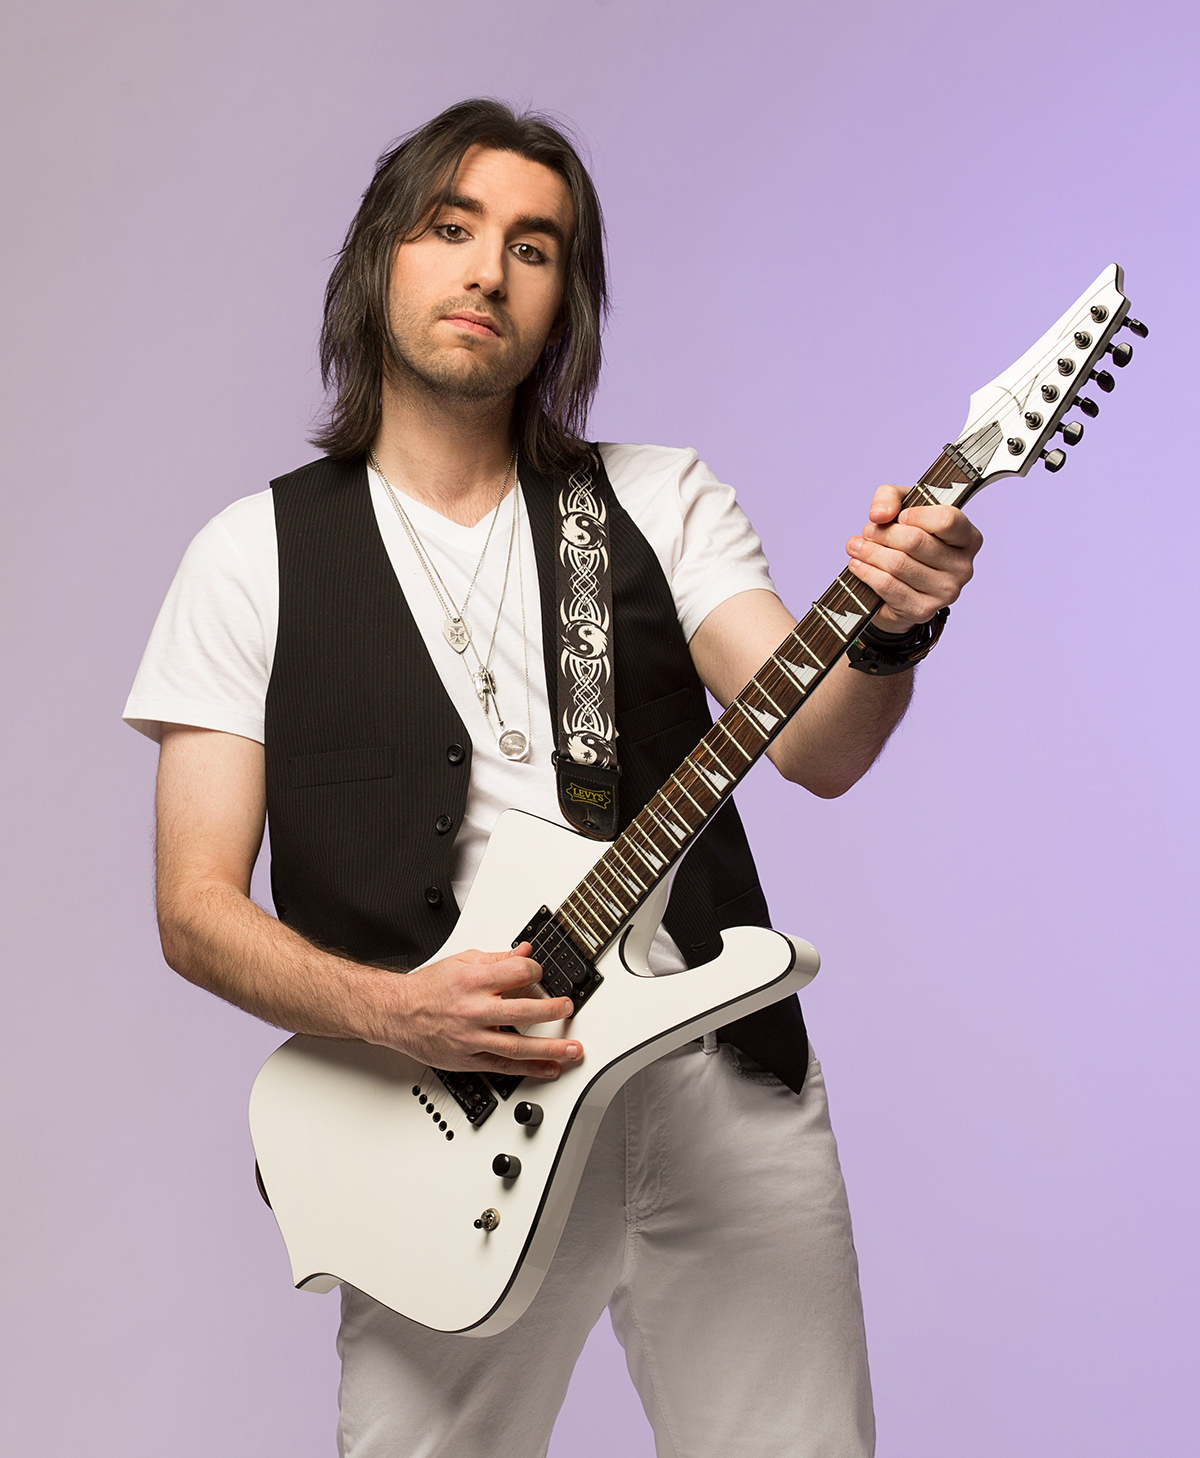 Peter Tentindo - Professional - With Guitar